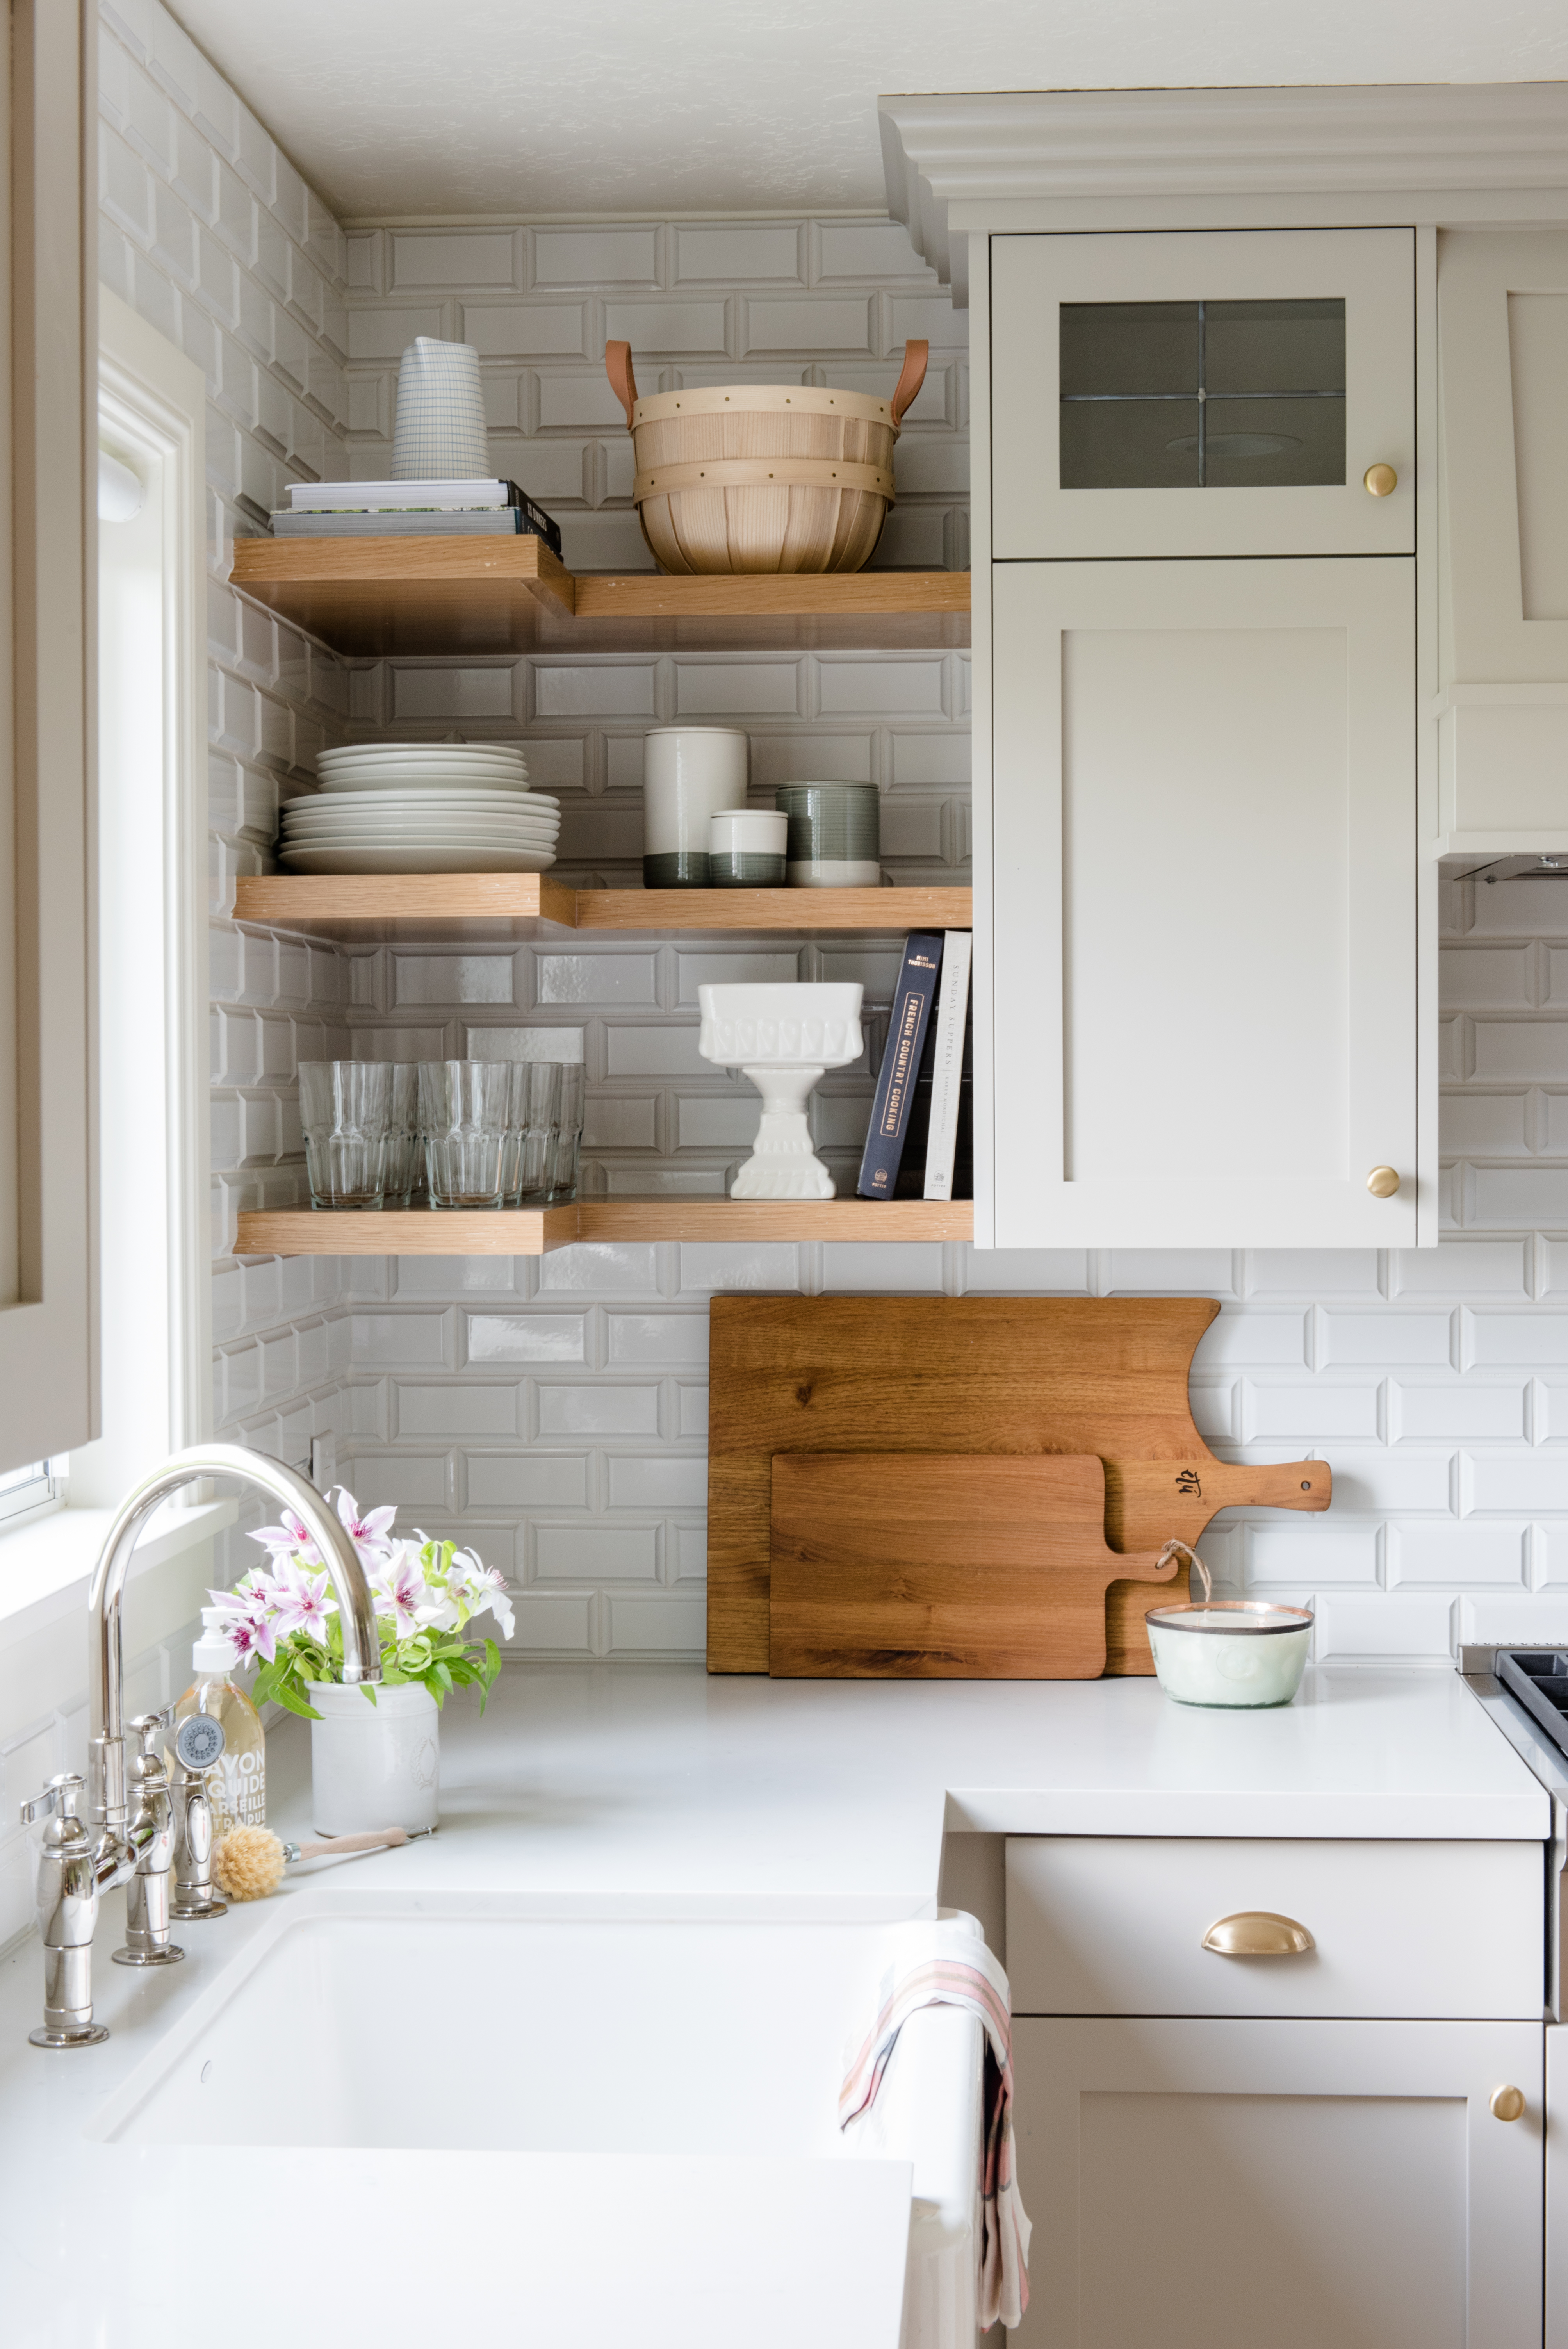 How Subway Tile Became The Go To Solution For Farmhouse Chic The Washington Post